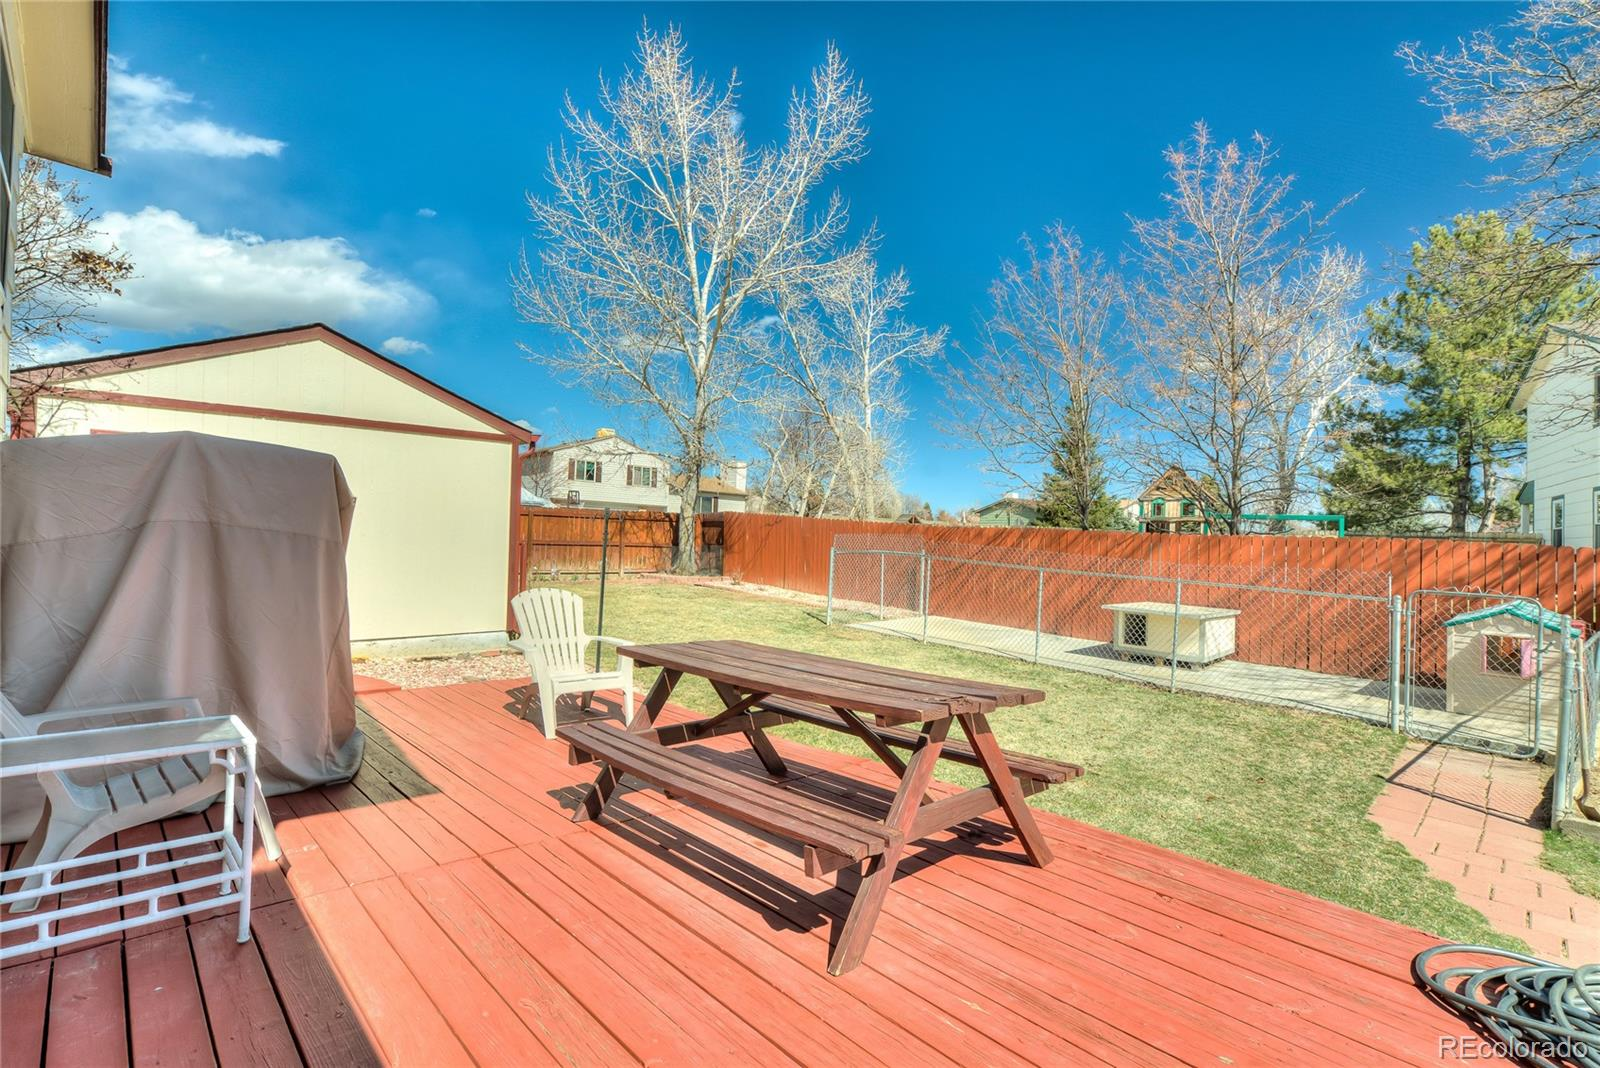 MLS# 2811379 - 26 - 9645 W David Avenue, Littleton, CO 80128